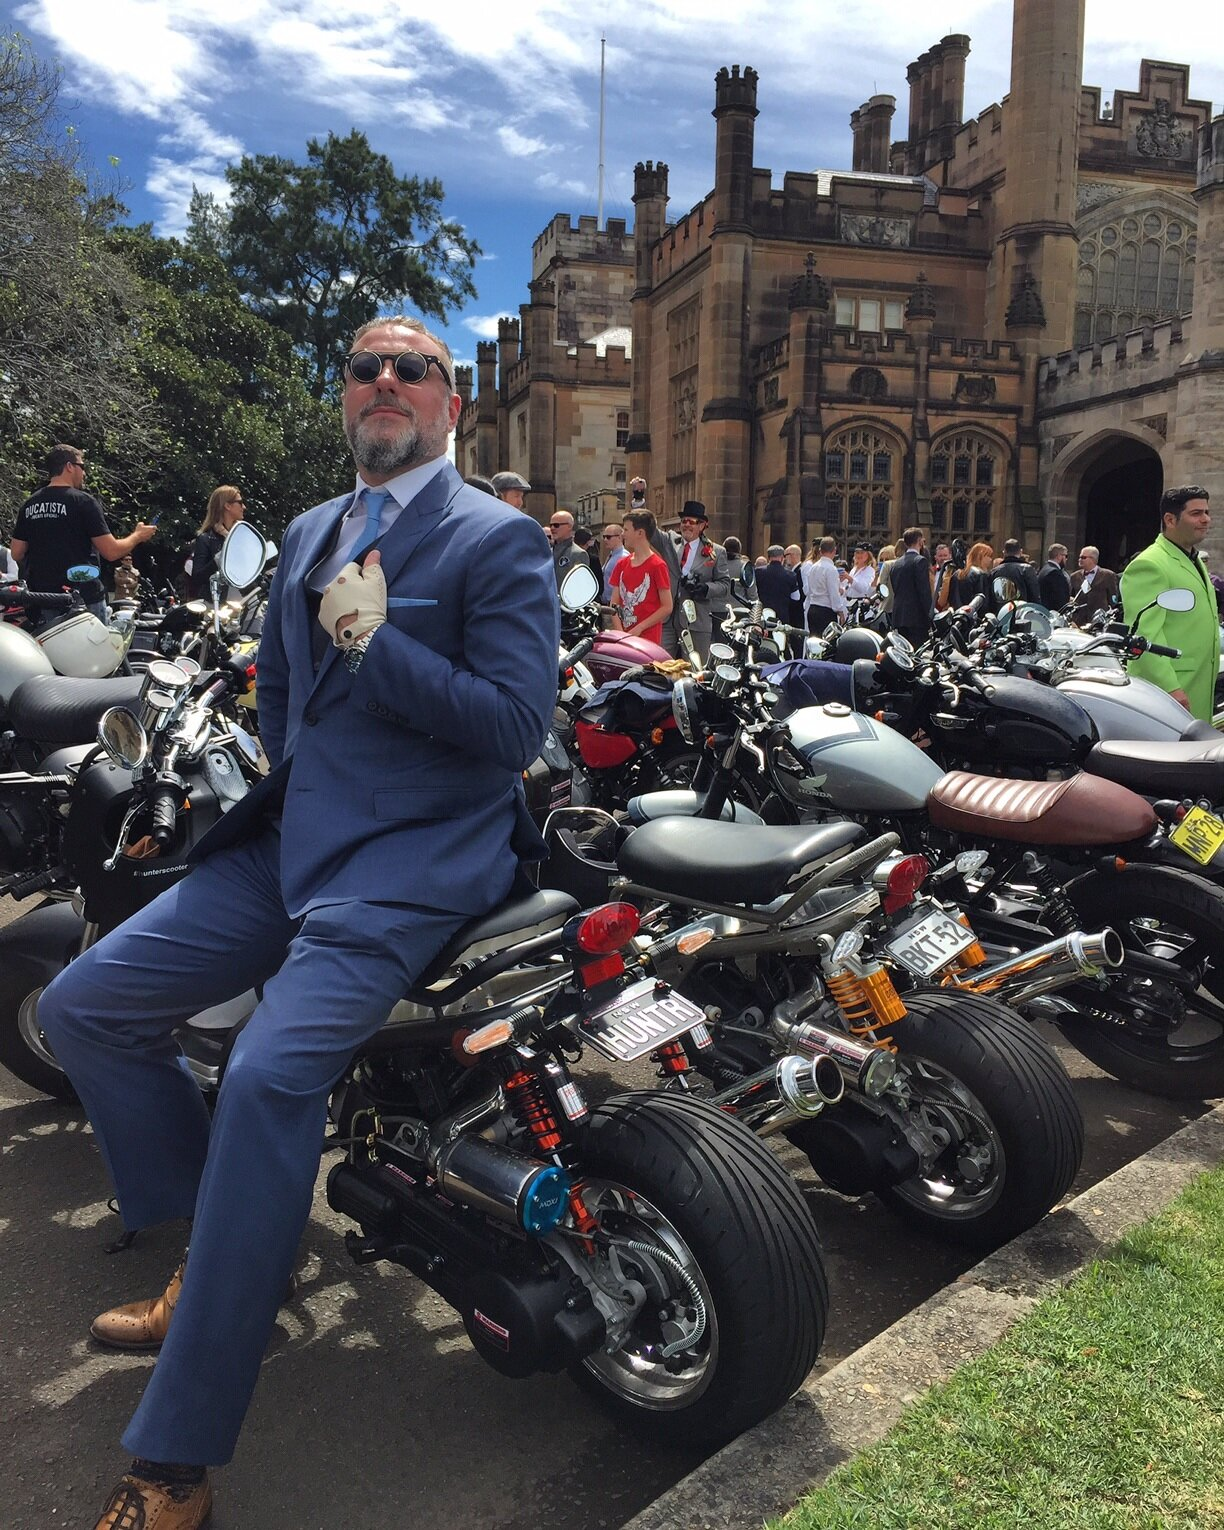 Don your finest attire and ride for a cure to prostate cancer.